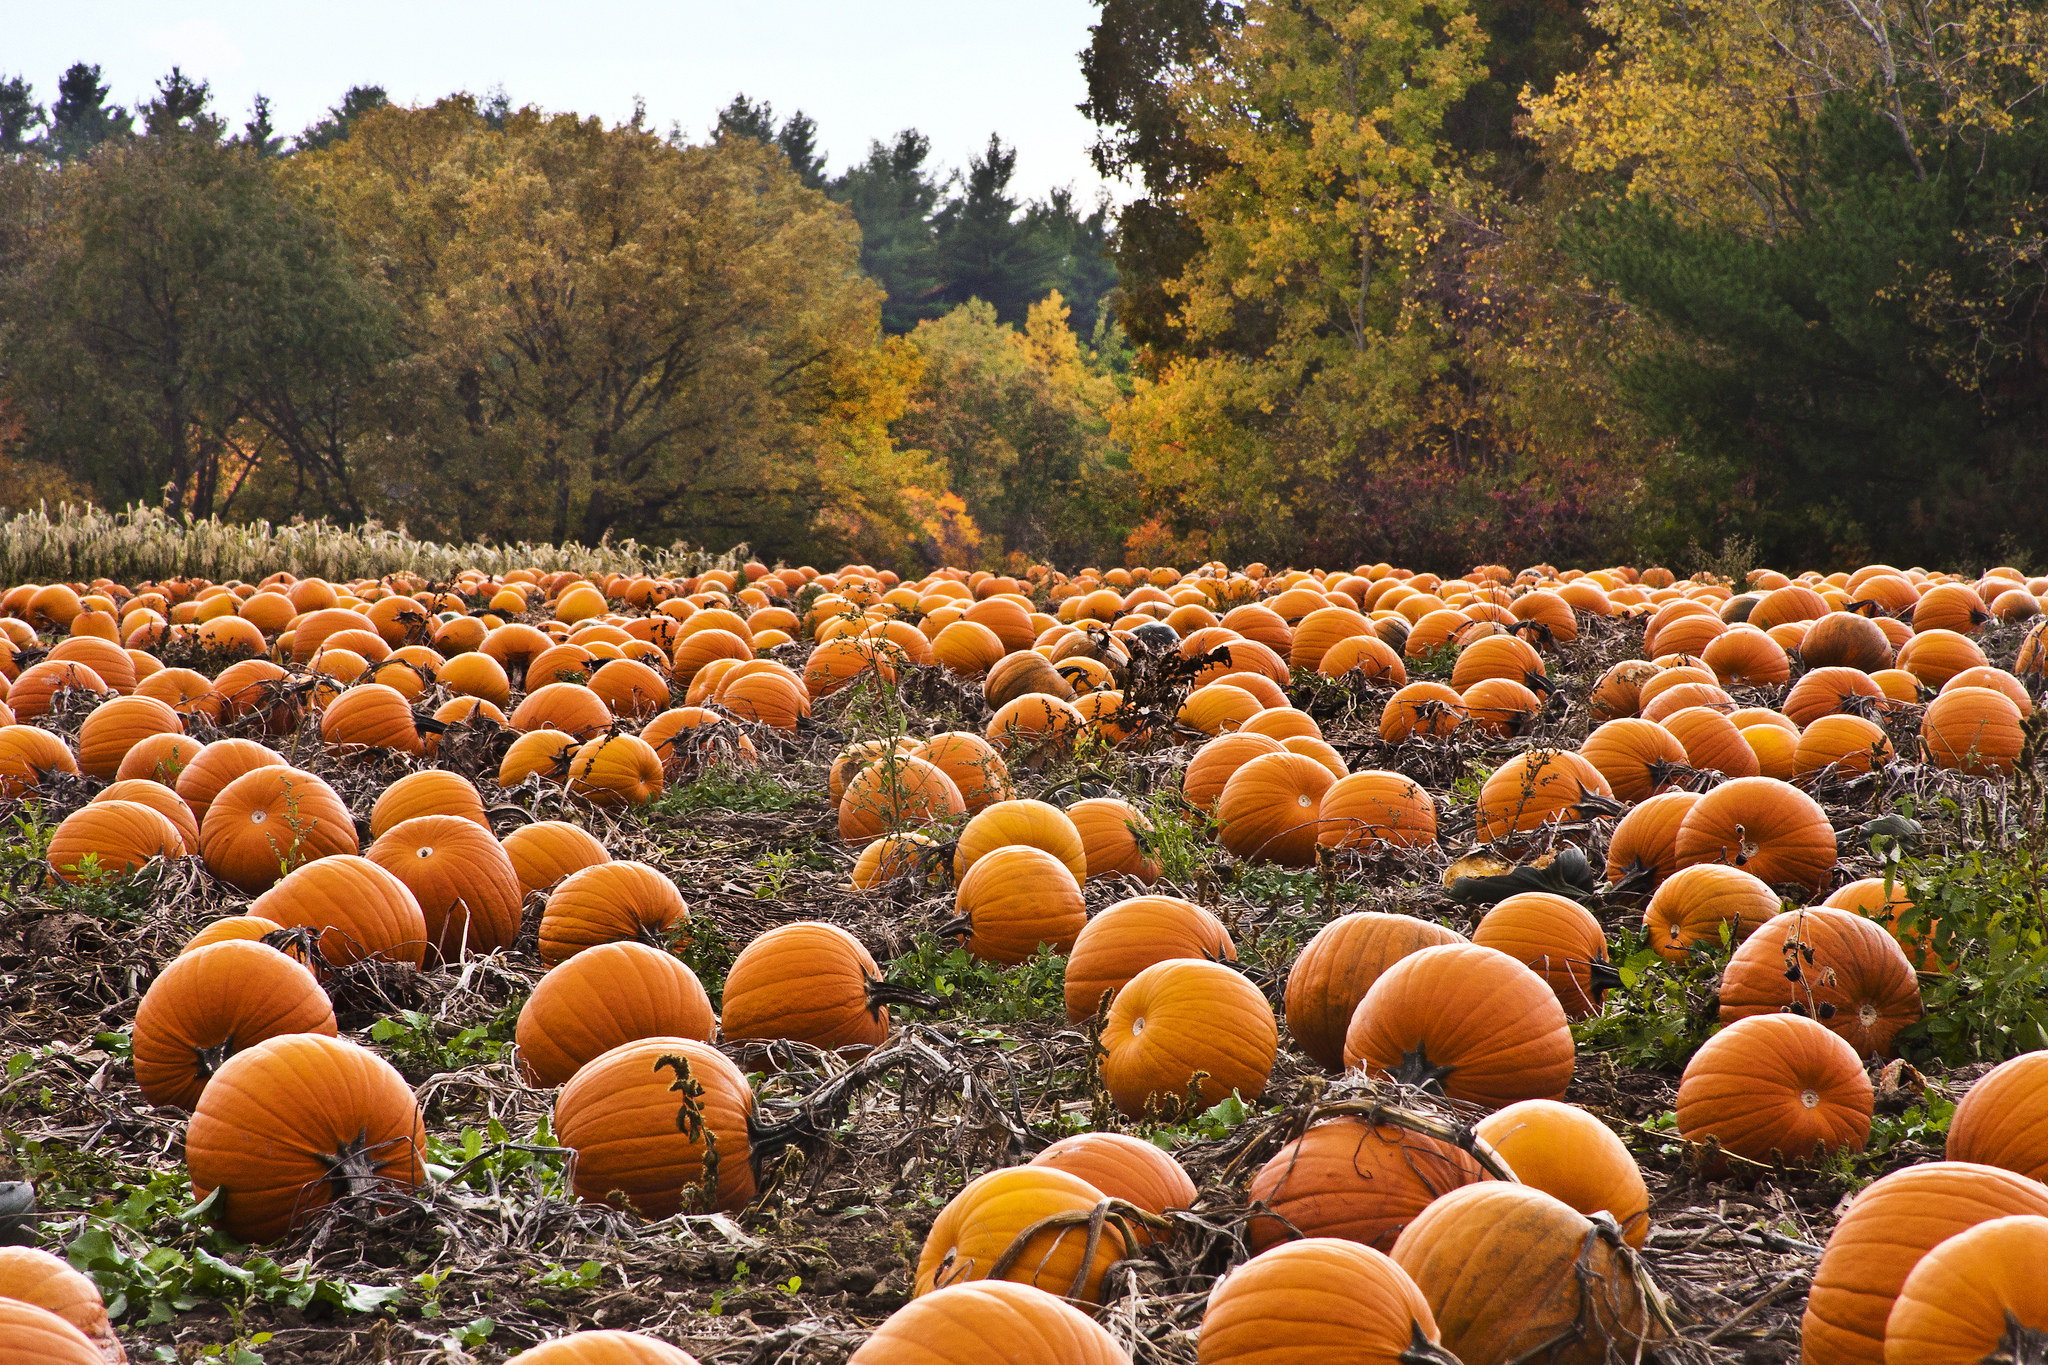 pumpkin-patch-desktop-wallpaper-5653-5939-hd-wallpapers